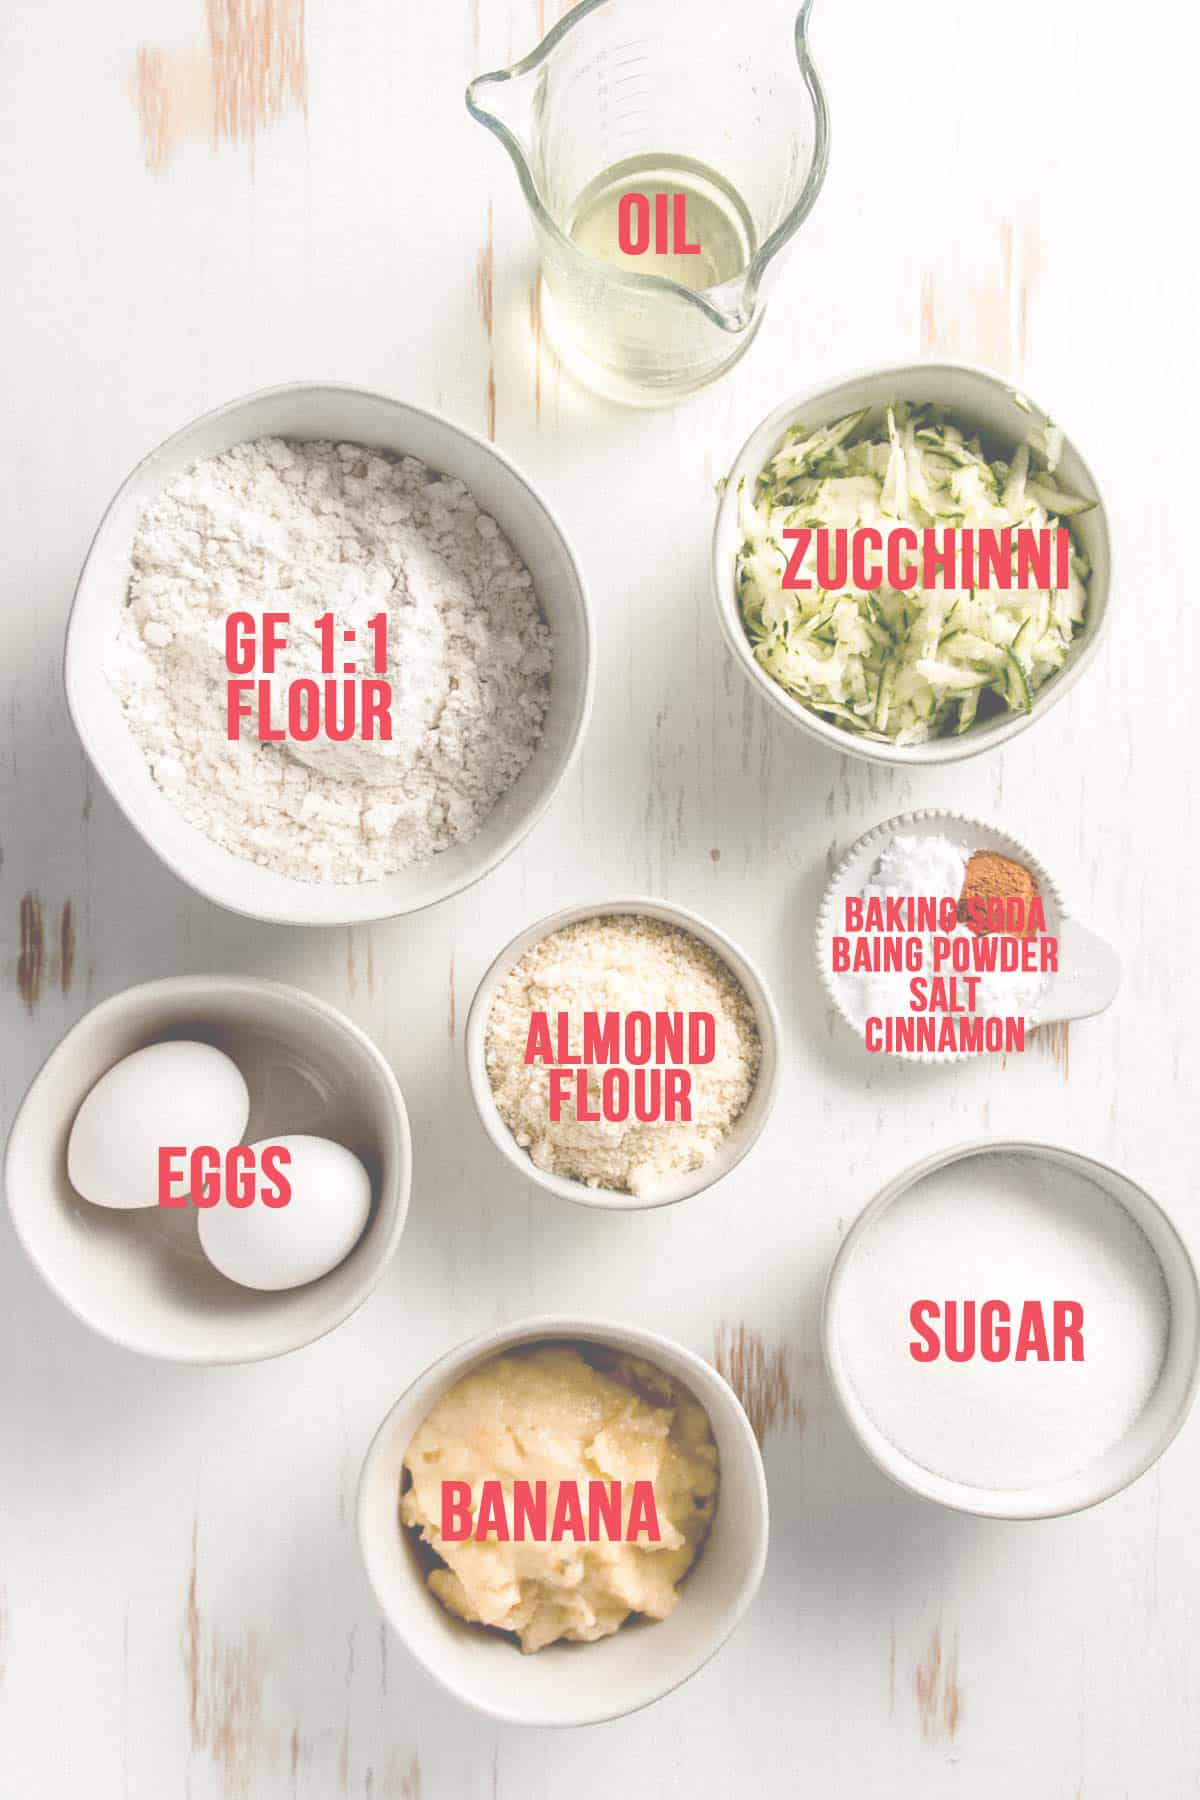 The recipe ingredients measured out in bowls.